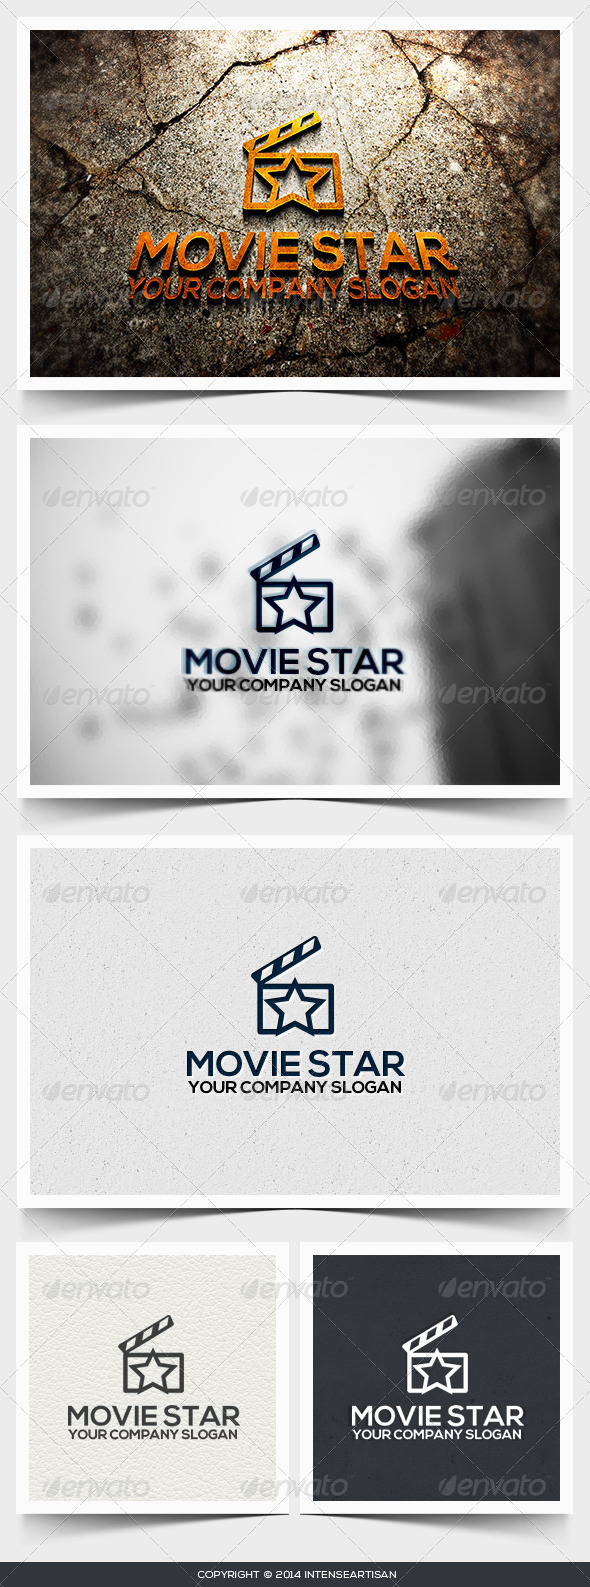 Movie Star Logo Template - Objects Logo Templates